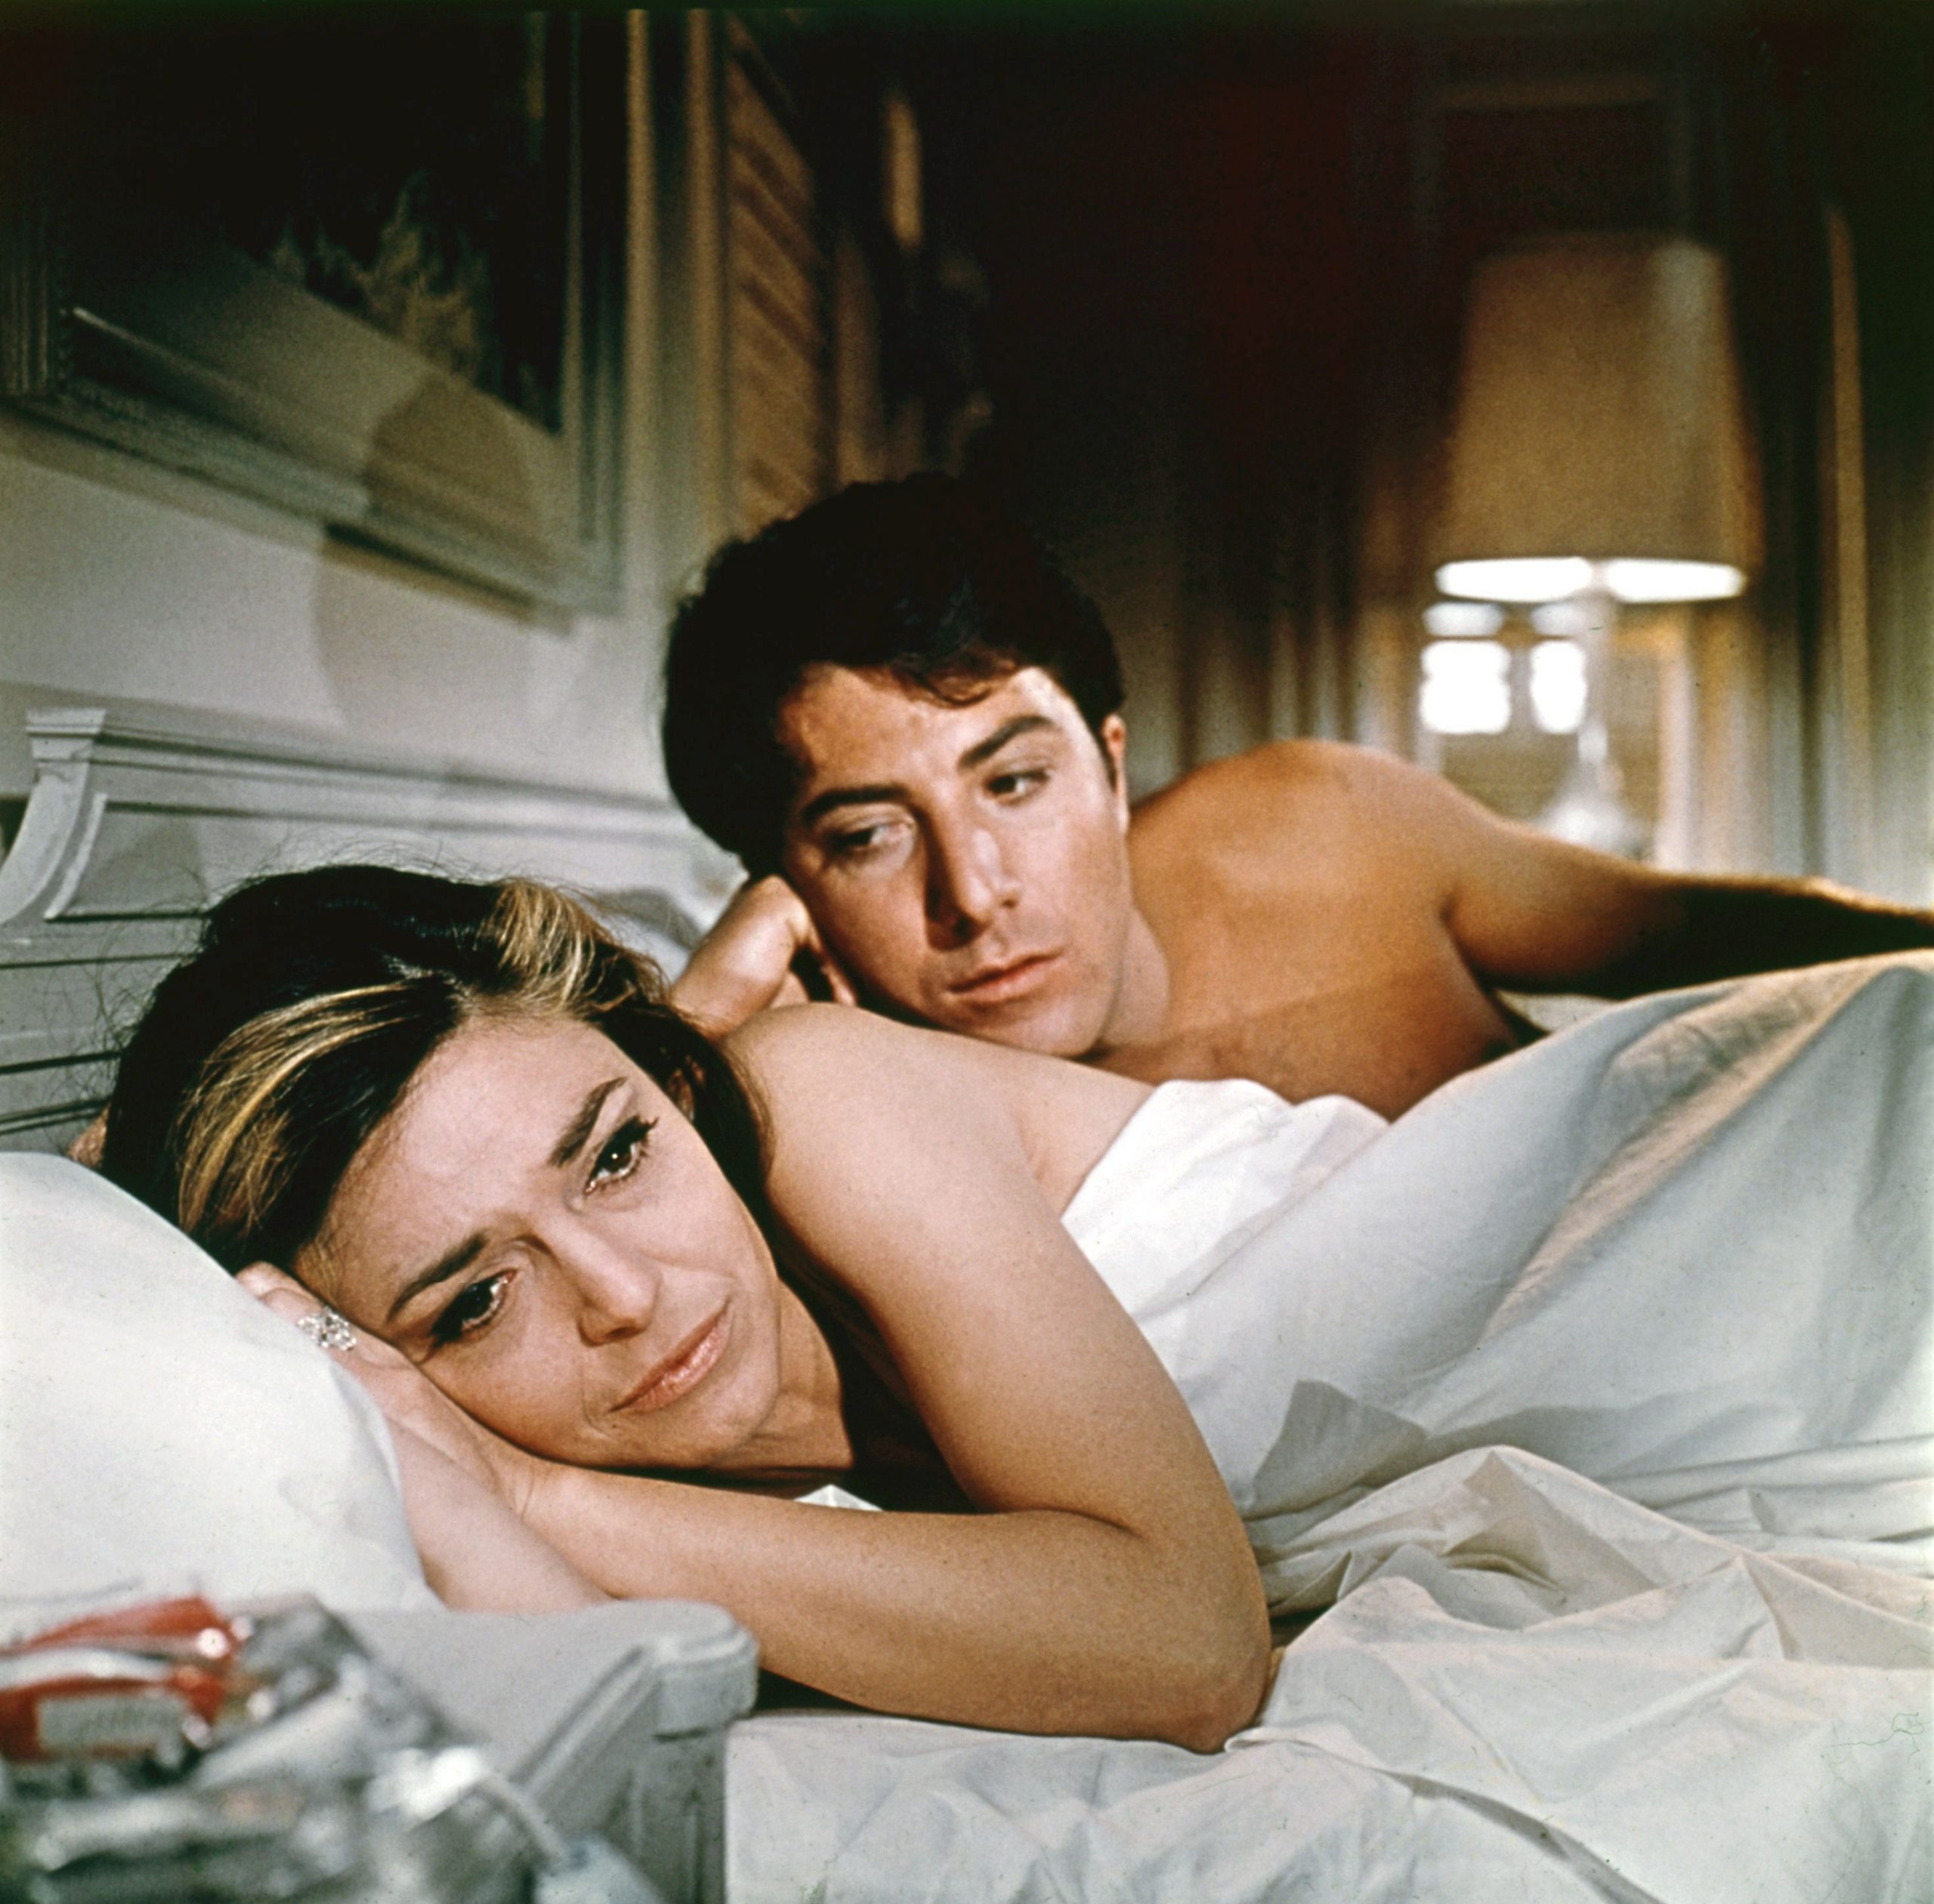 An image from the Graduate of Benjamin and Mrs Robinson in bed